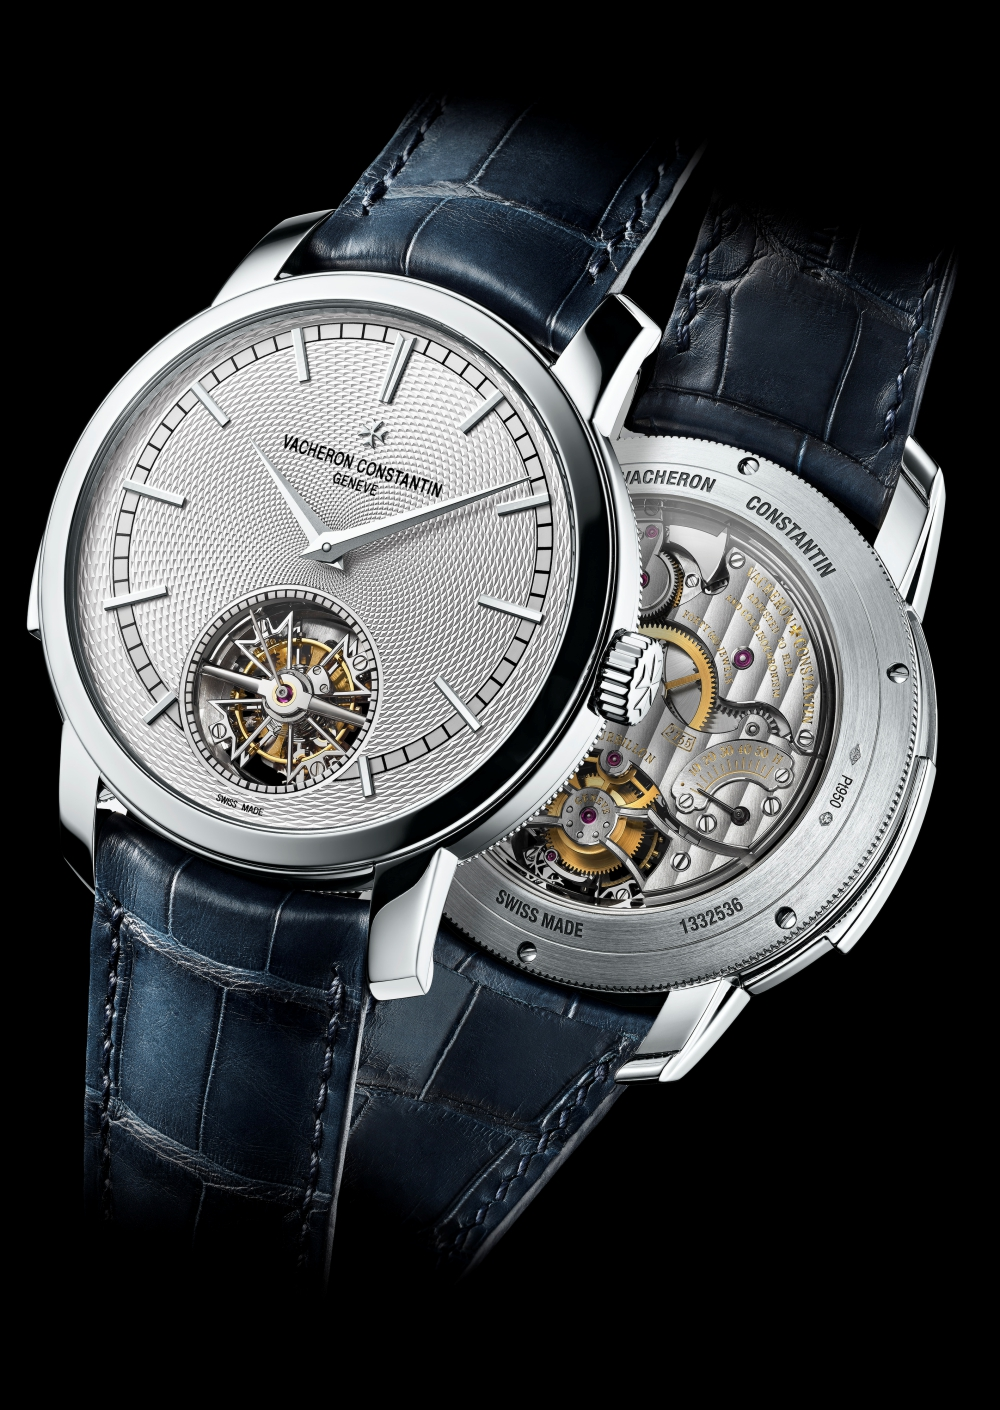 foto-1_vacheron_constantin_traditionnelle_-tourbillon_-repeticion-minutos_